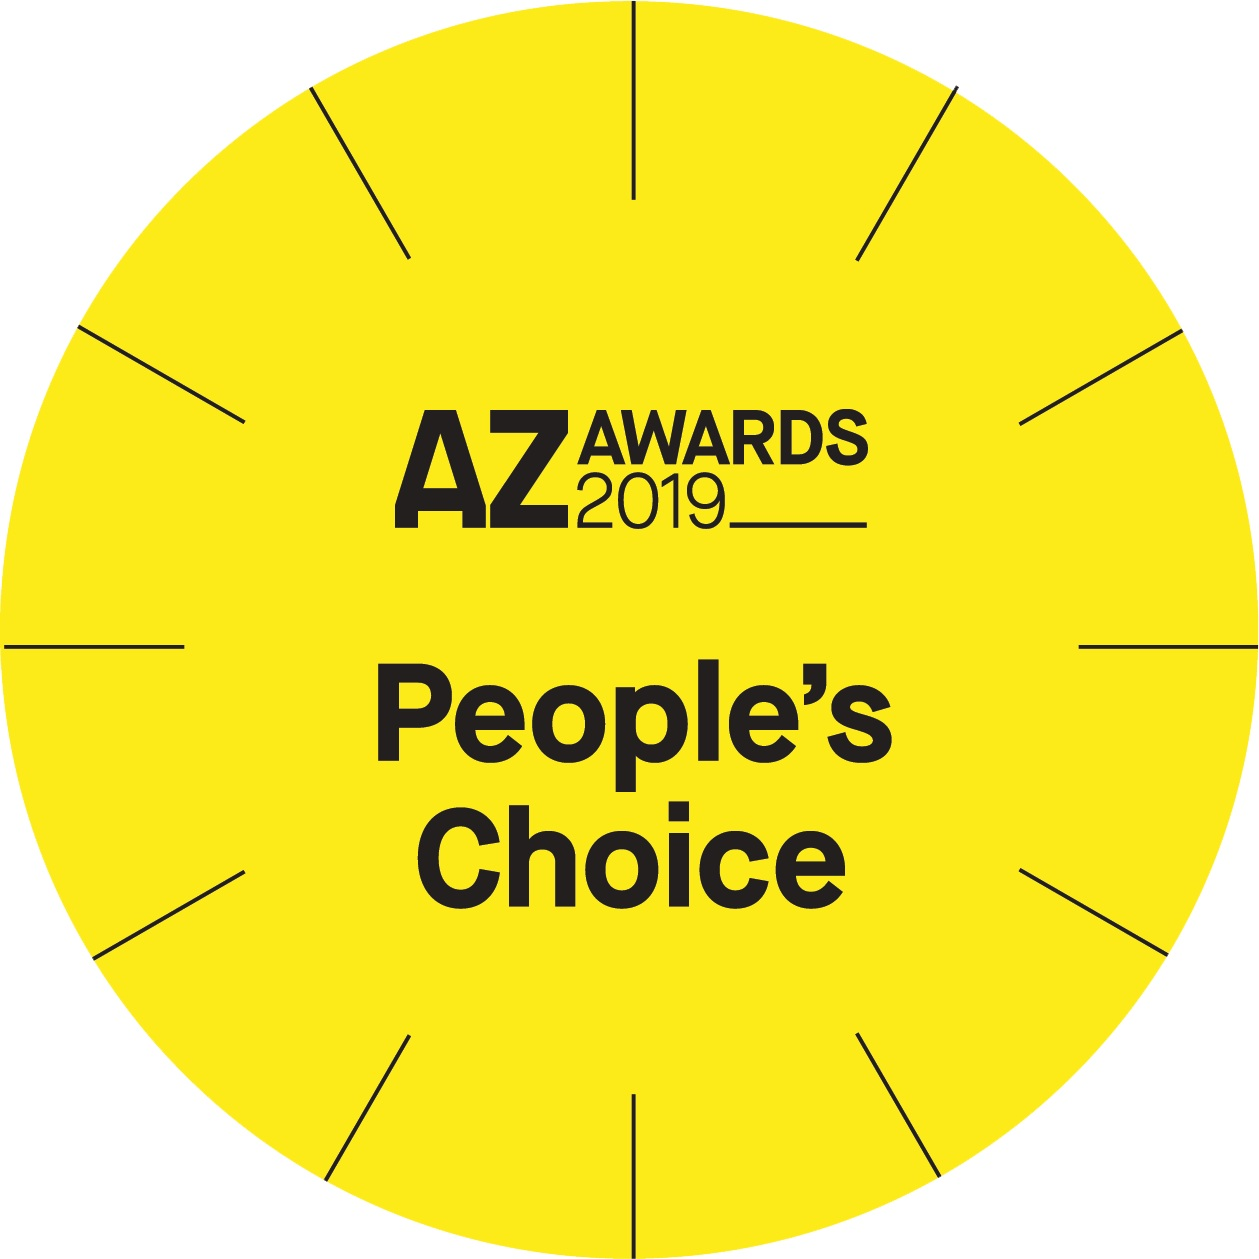 Loci Receives Azure's People's Choice Award - July 3, 2019On Friday, June 21, @azuremagazine revealed the winners of the 2019 AZ Awards at @evergreen_brick_works in Toronto. Loci took home the